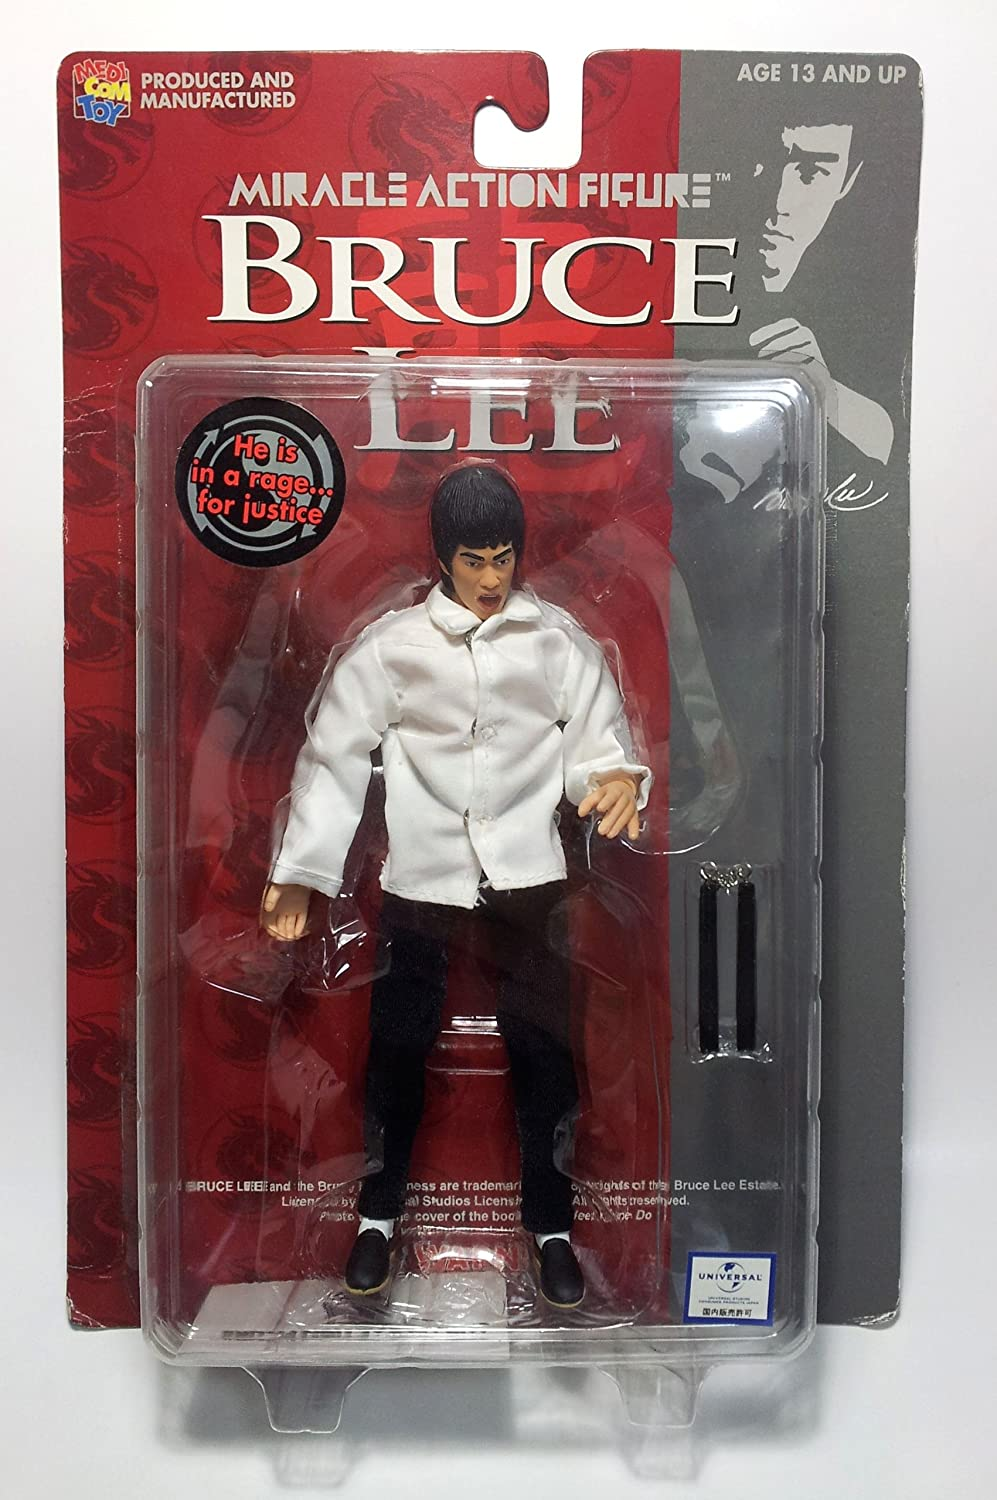 Bruce Lee Miracle Action Figure (white)